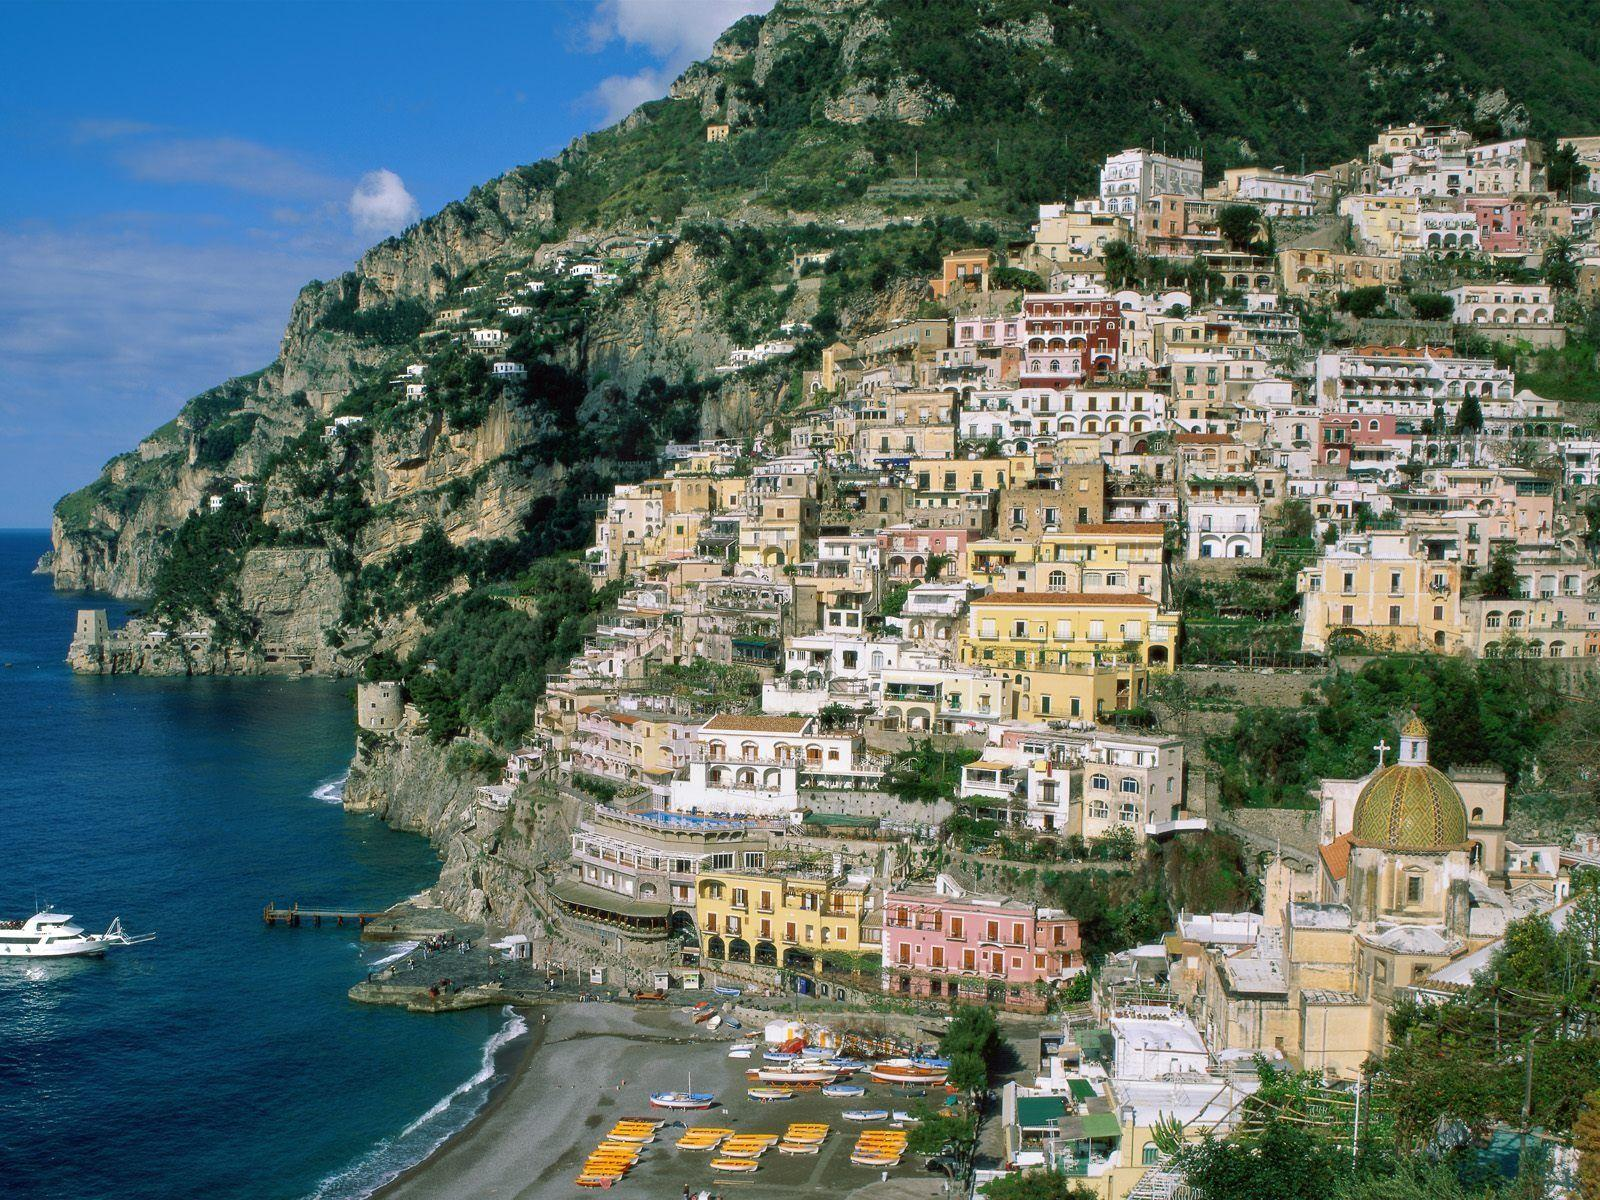 Amalfi Coast Wallpapers Italy World Wallpapers in jpg format for